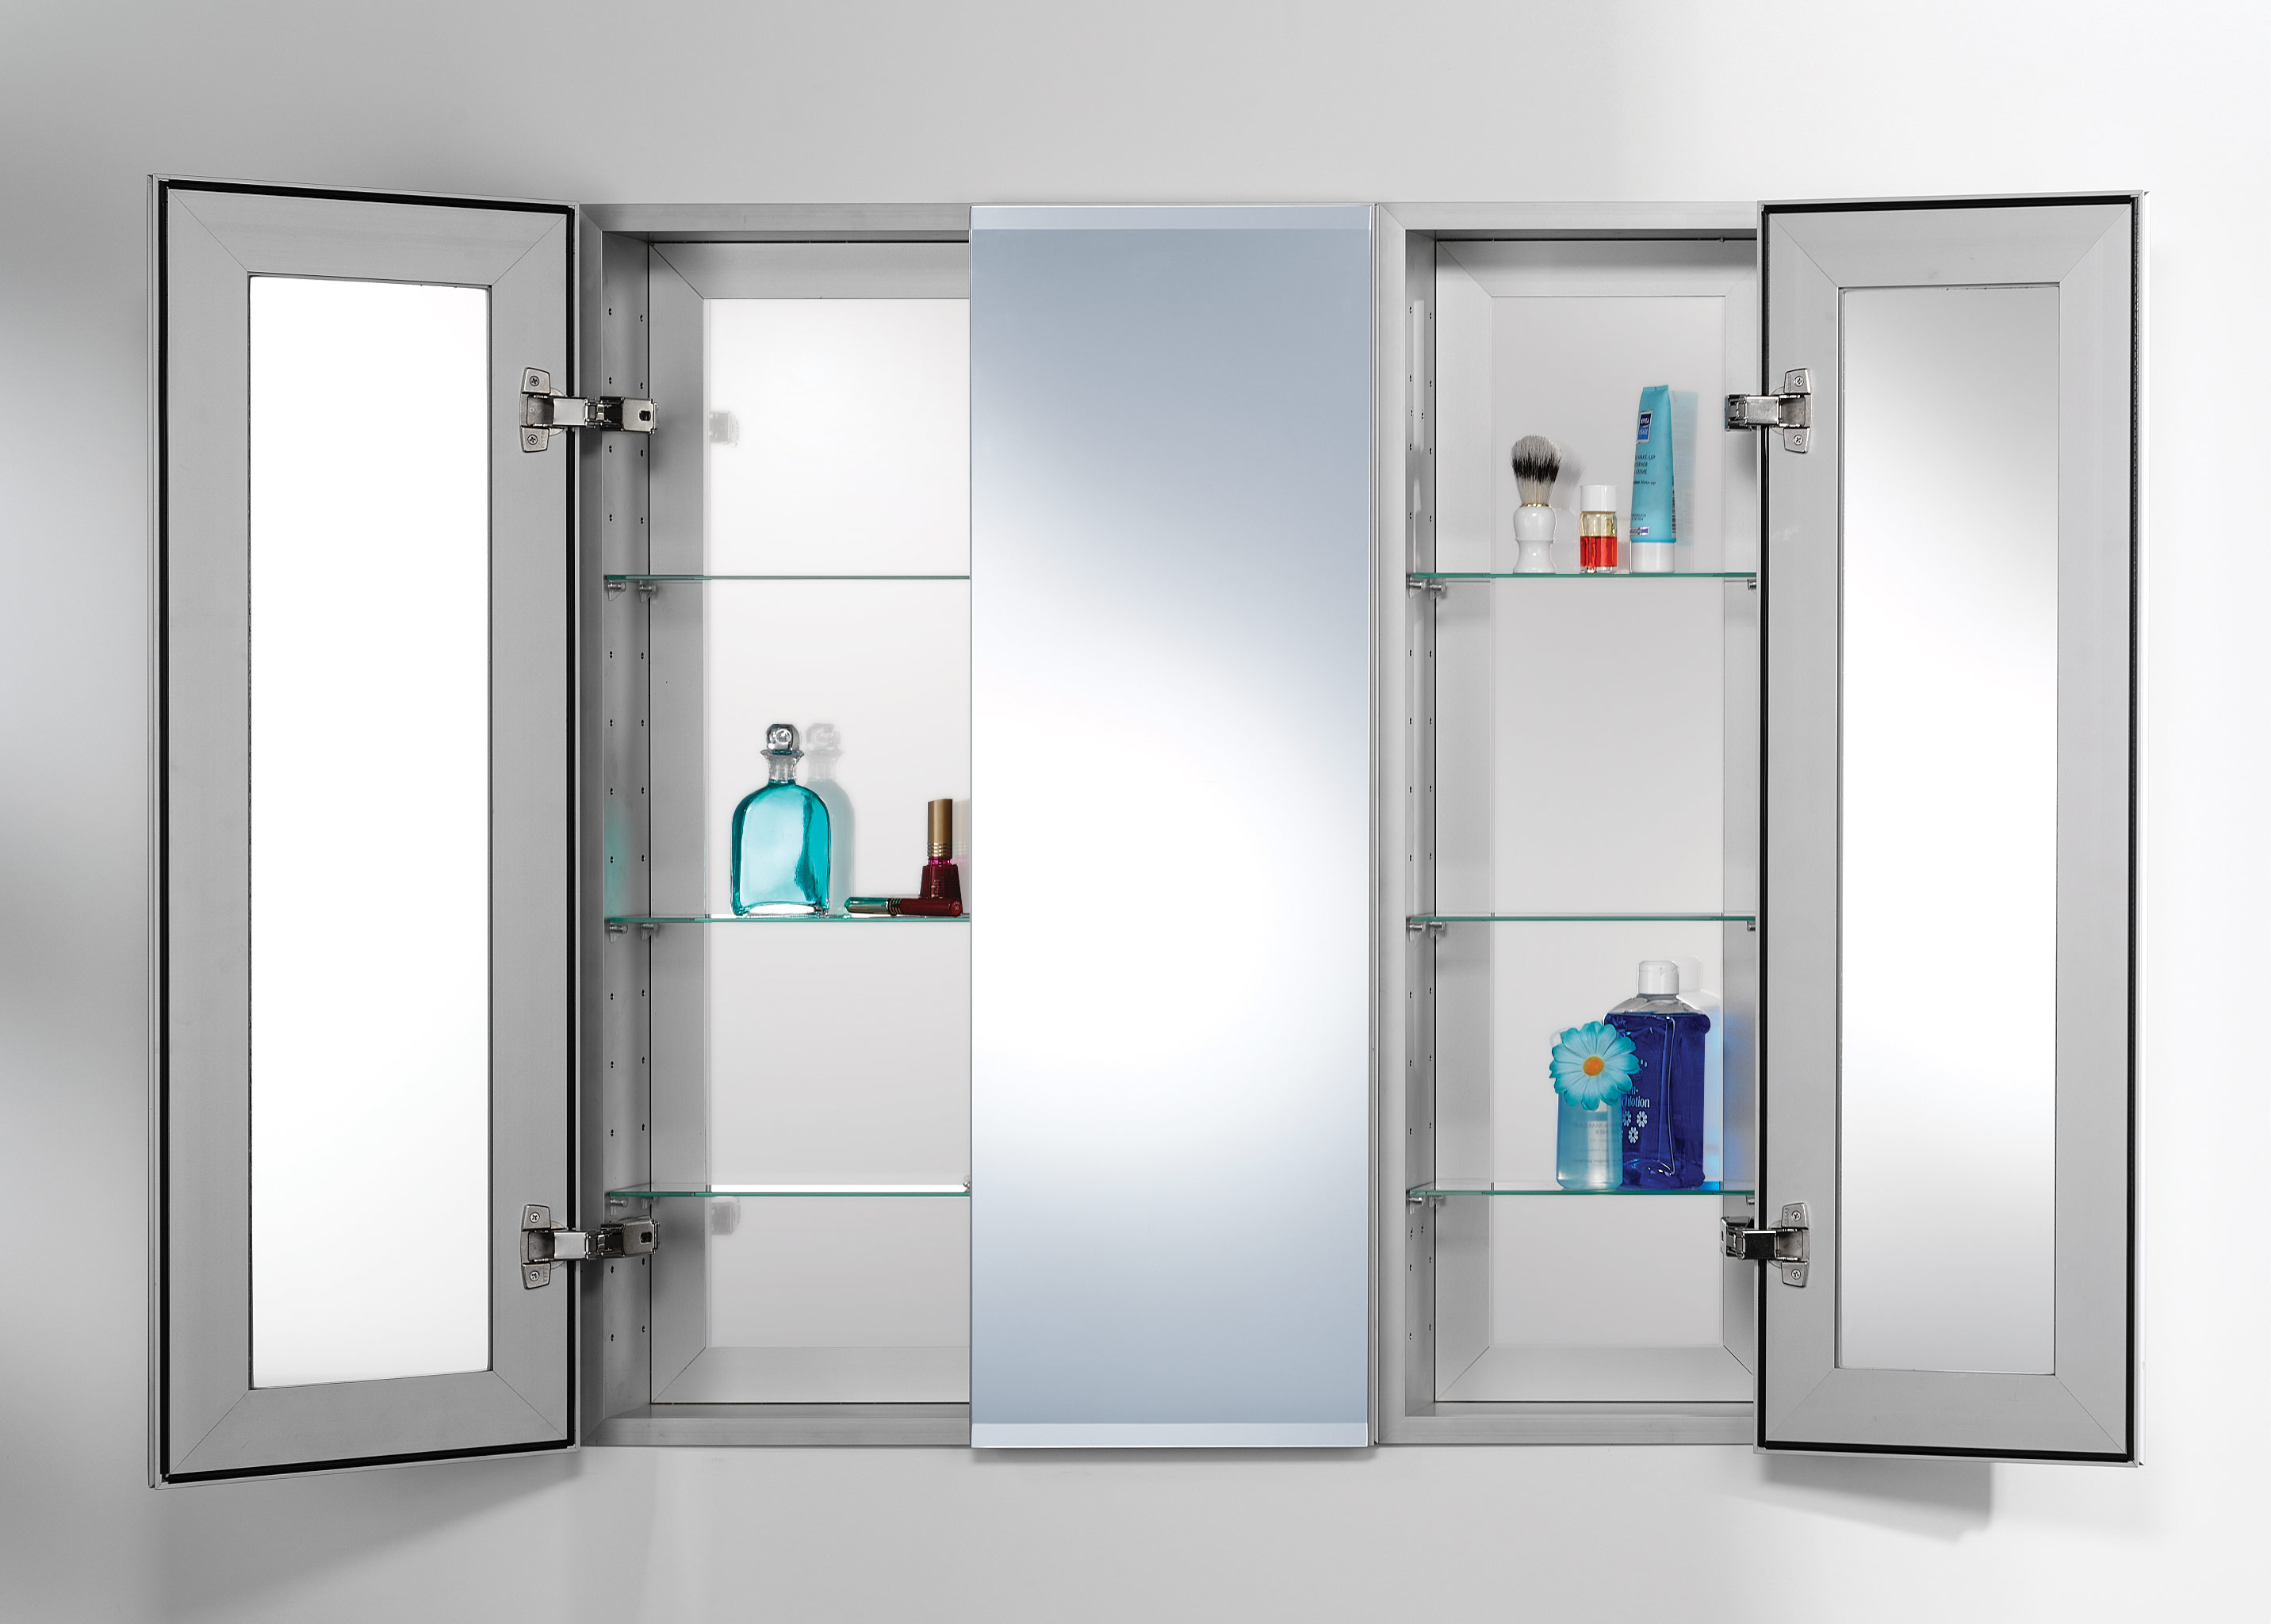 medicine replace metal shelves mirror trendy house was decorations open i cabinet replacement idea door converted into